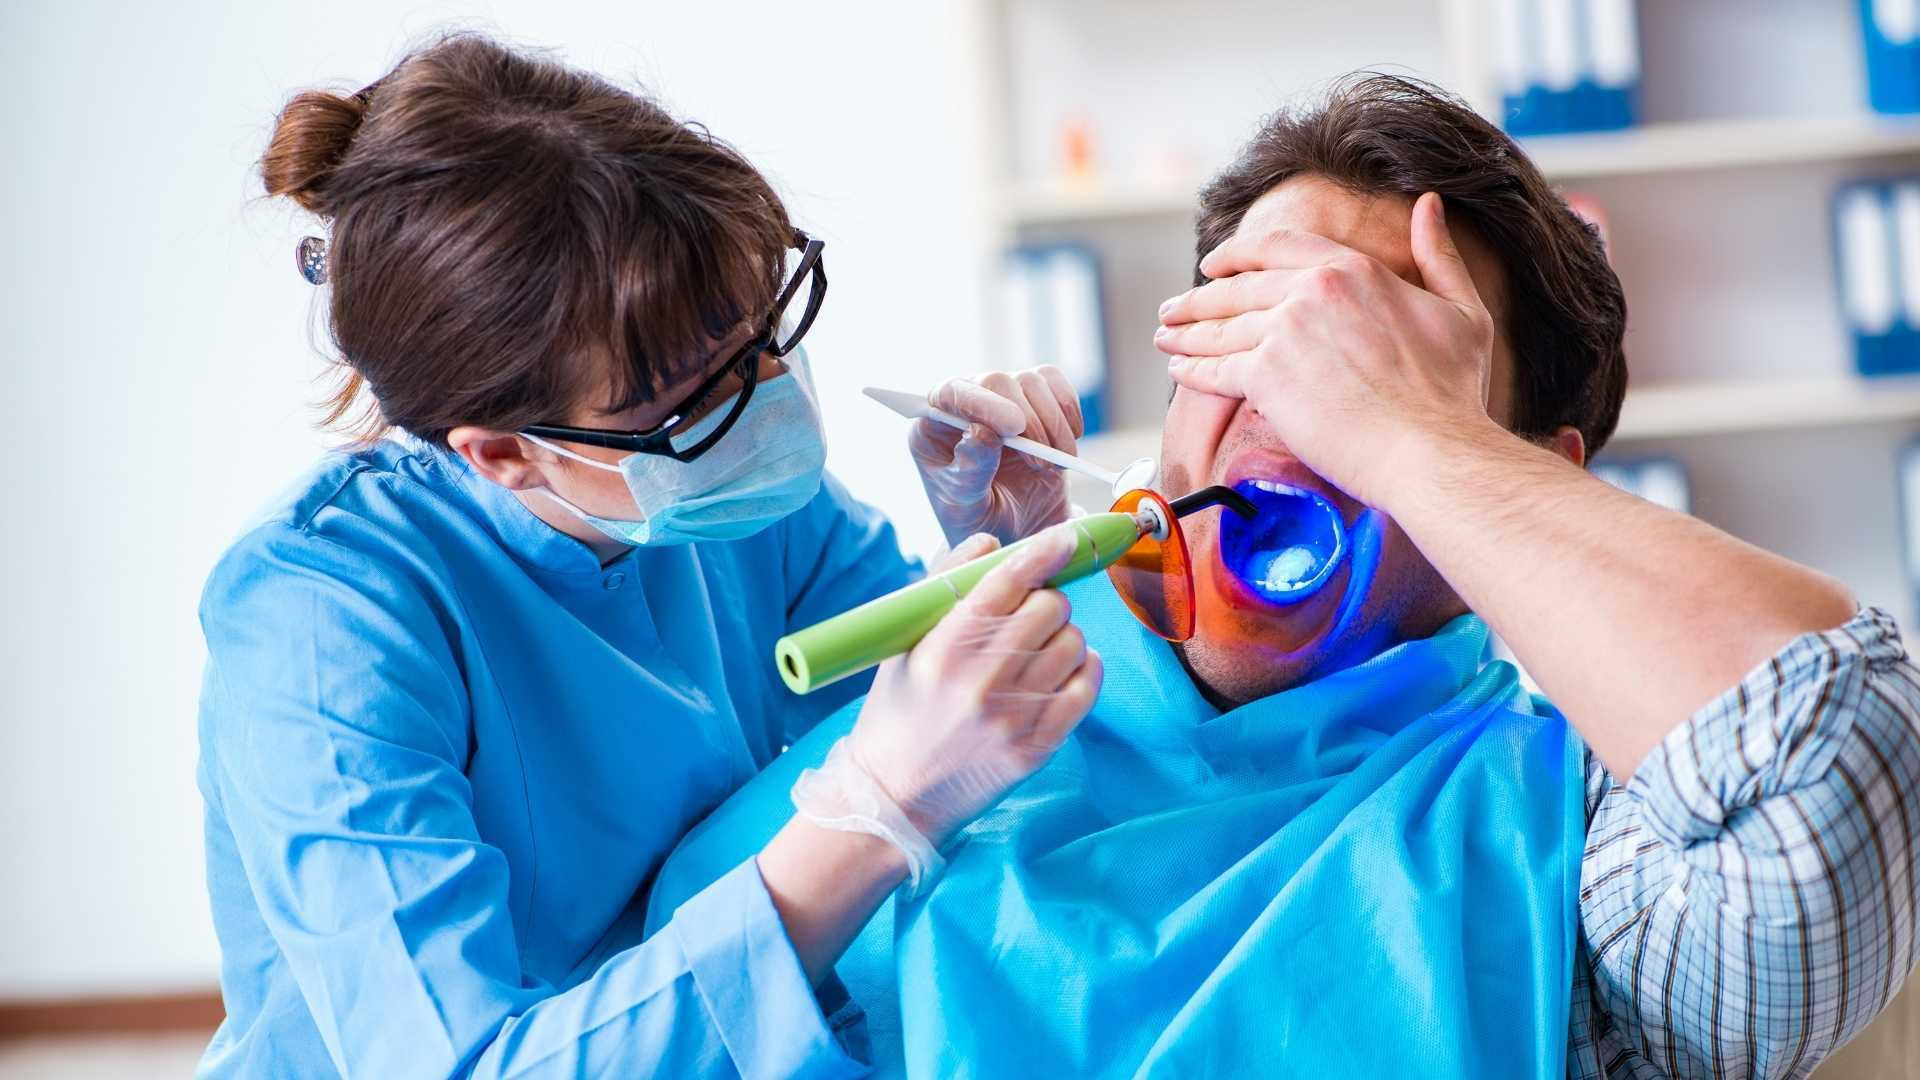 What to do if you are afraid of the dentist?